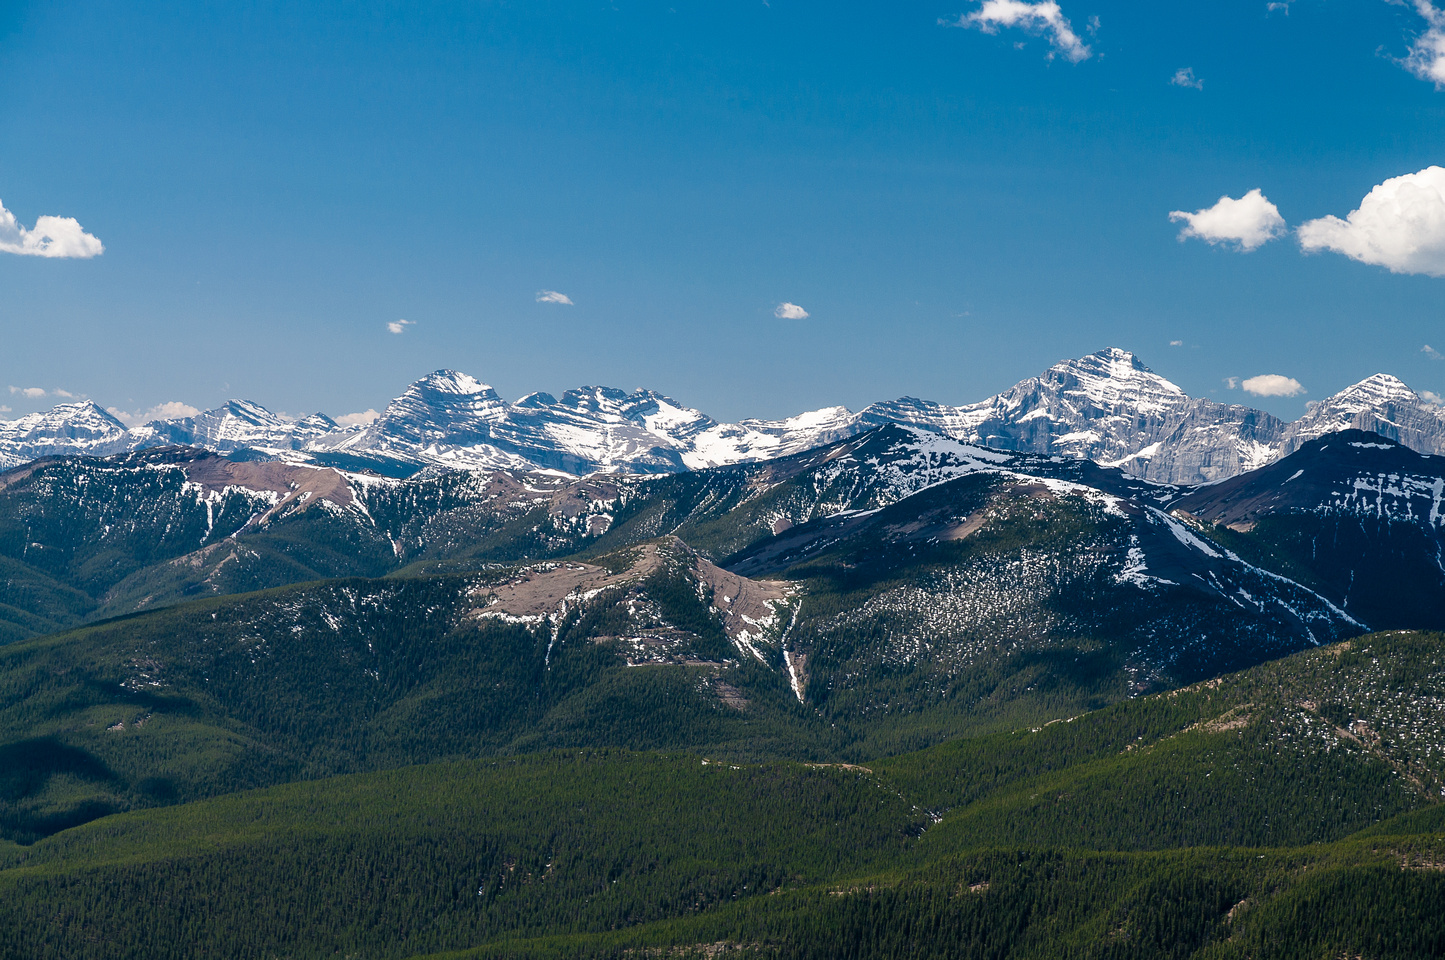 Gould Dome (L) and Tornado Mountain (R) are impressive peaks in the High Rock Range.